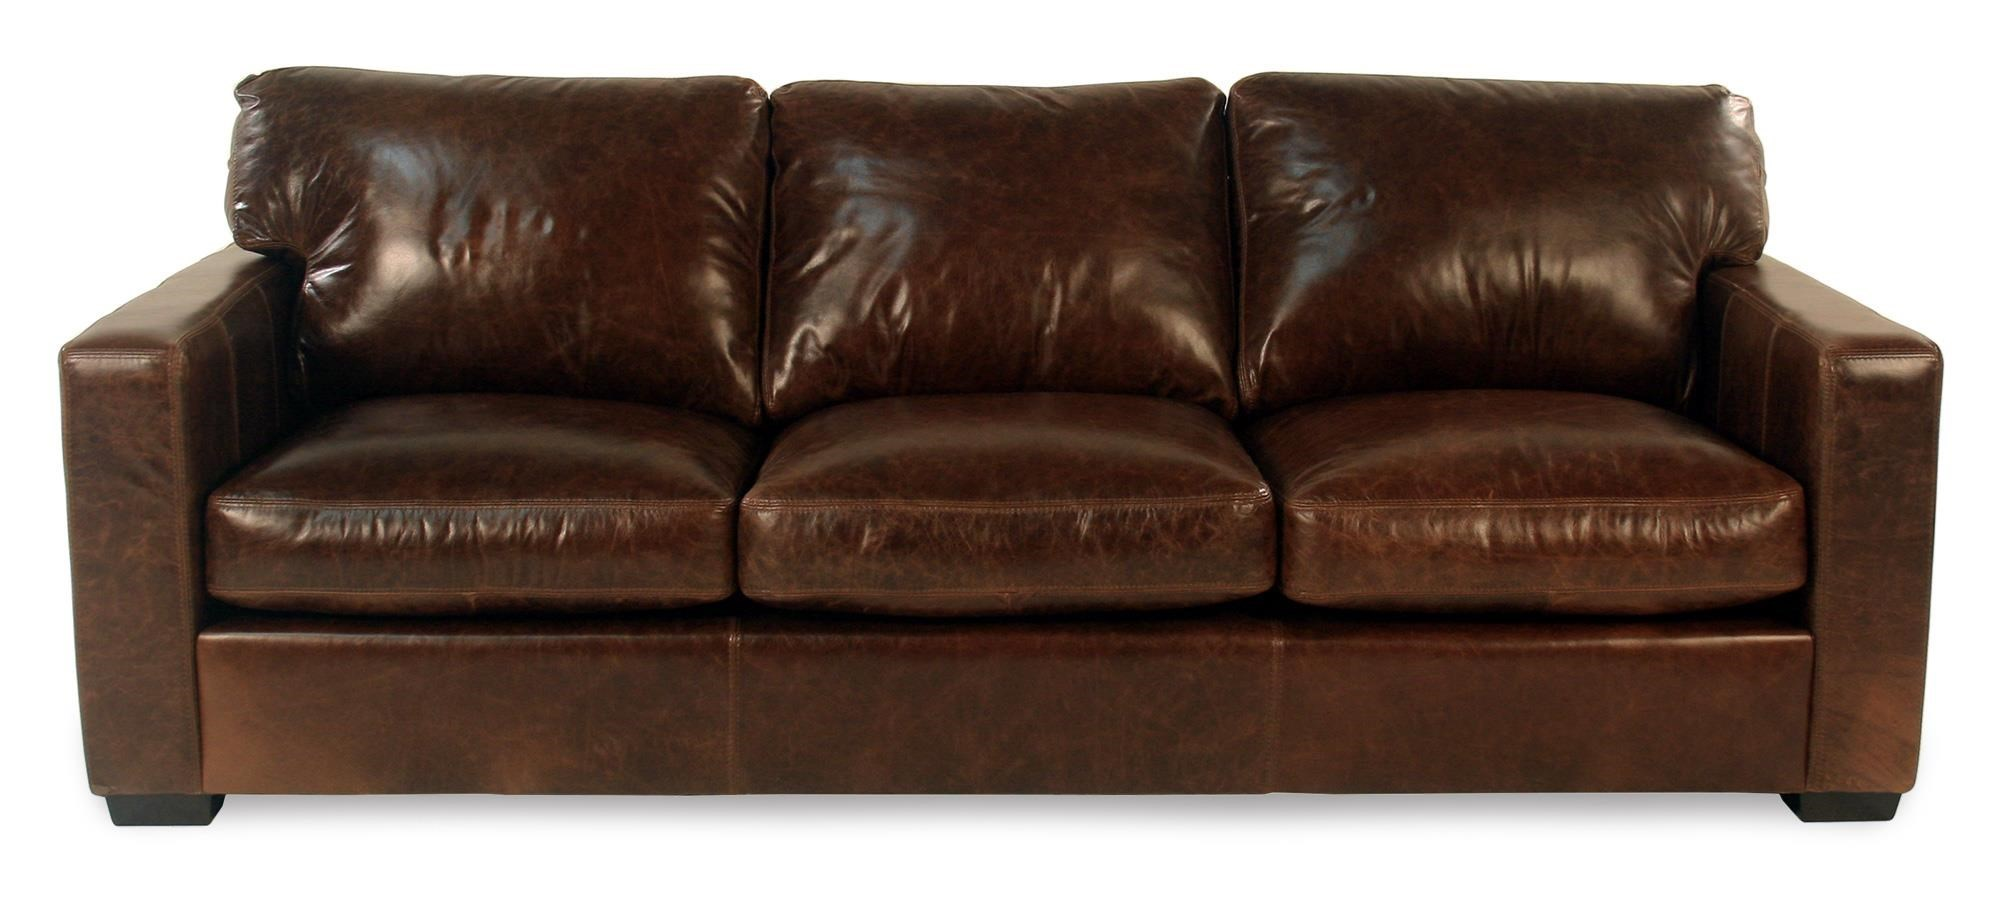 Living Room Furniture Ma fireside leather sofa w/ track arms - rotmans - sofas worcester